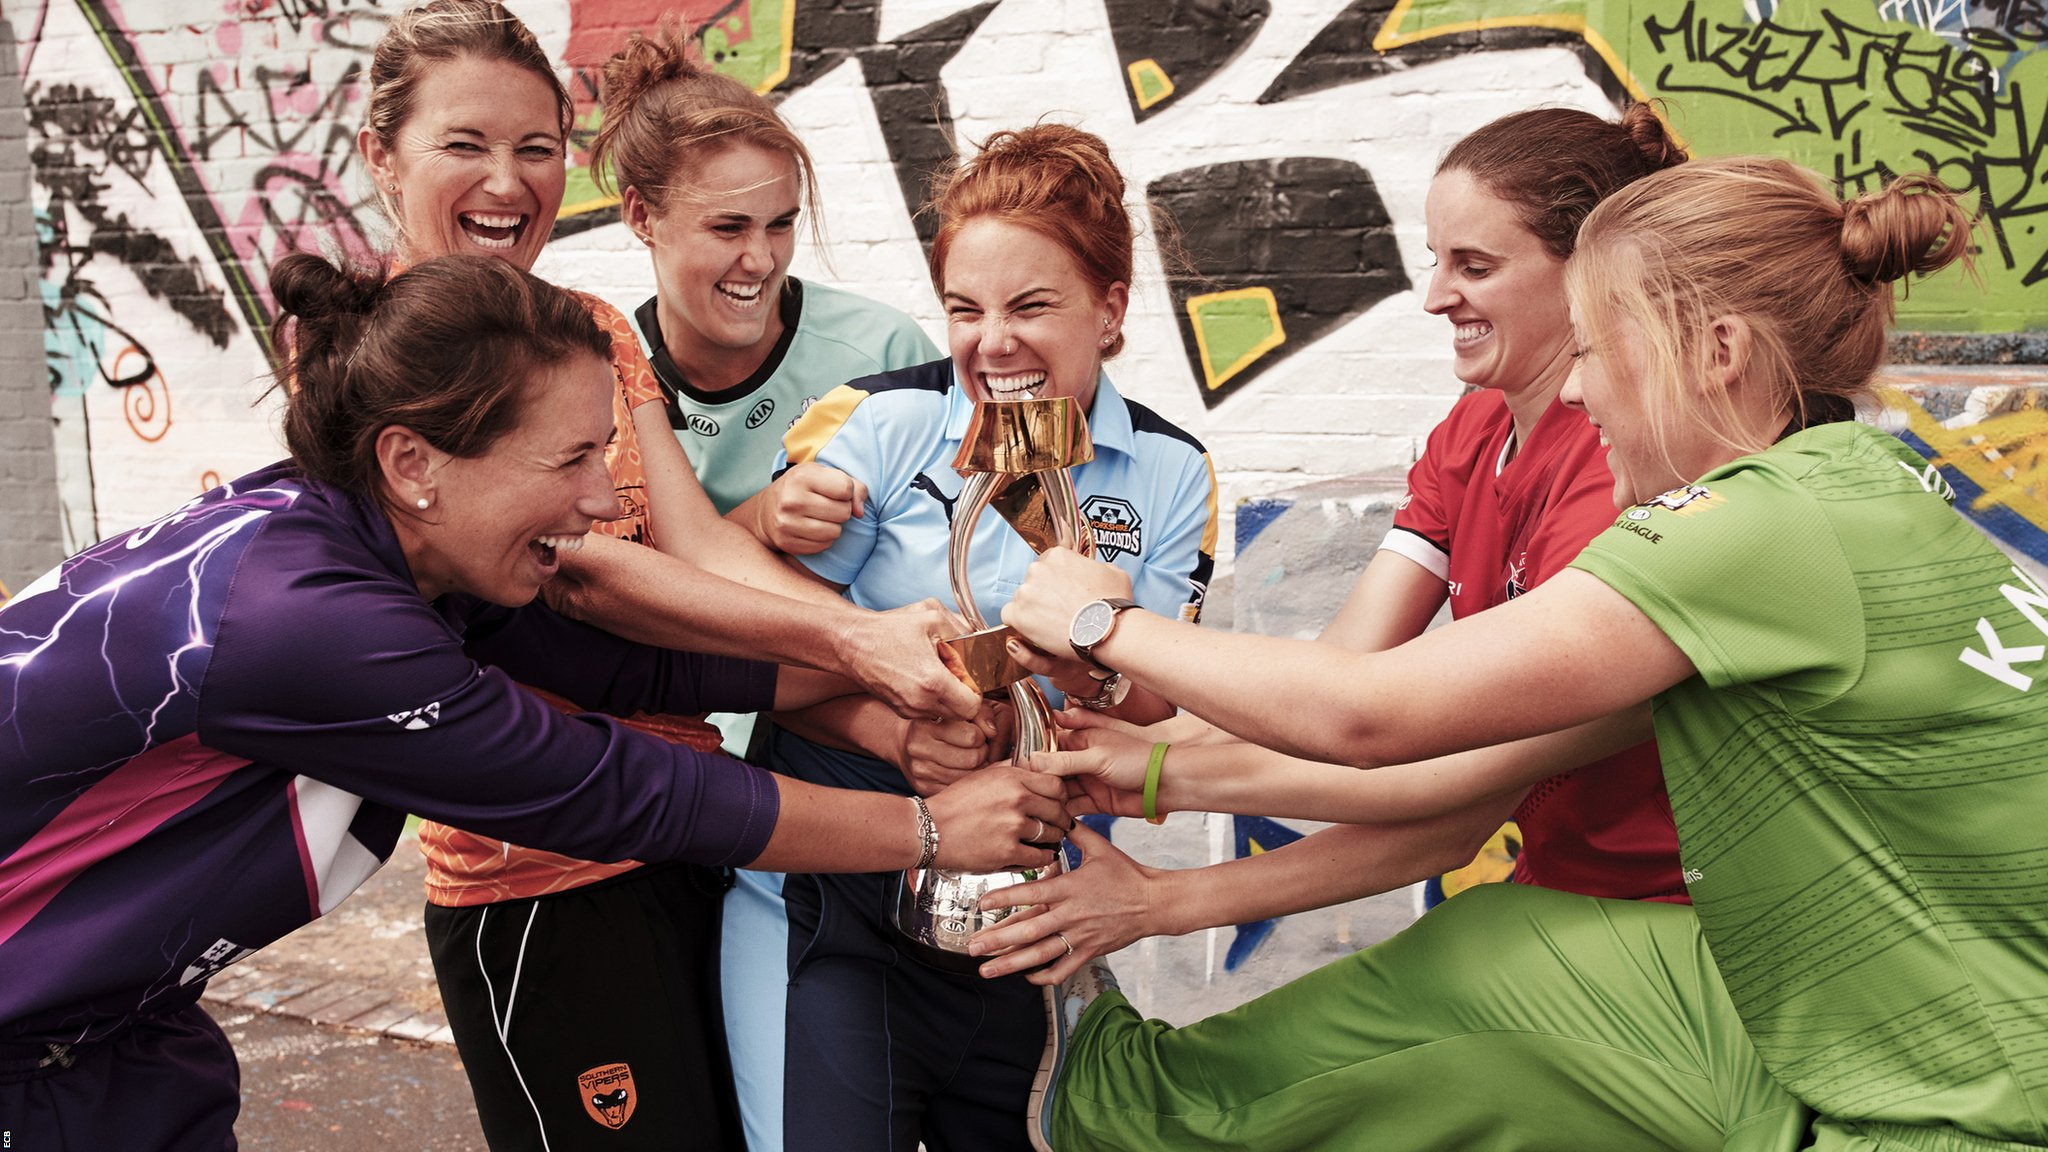 Women lead way with franchise cricket as Super League launches